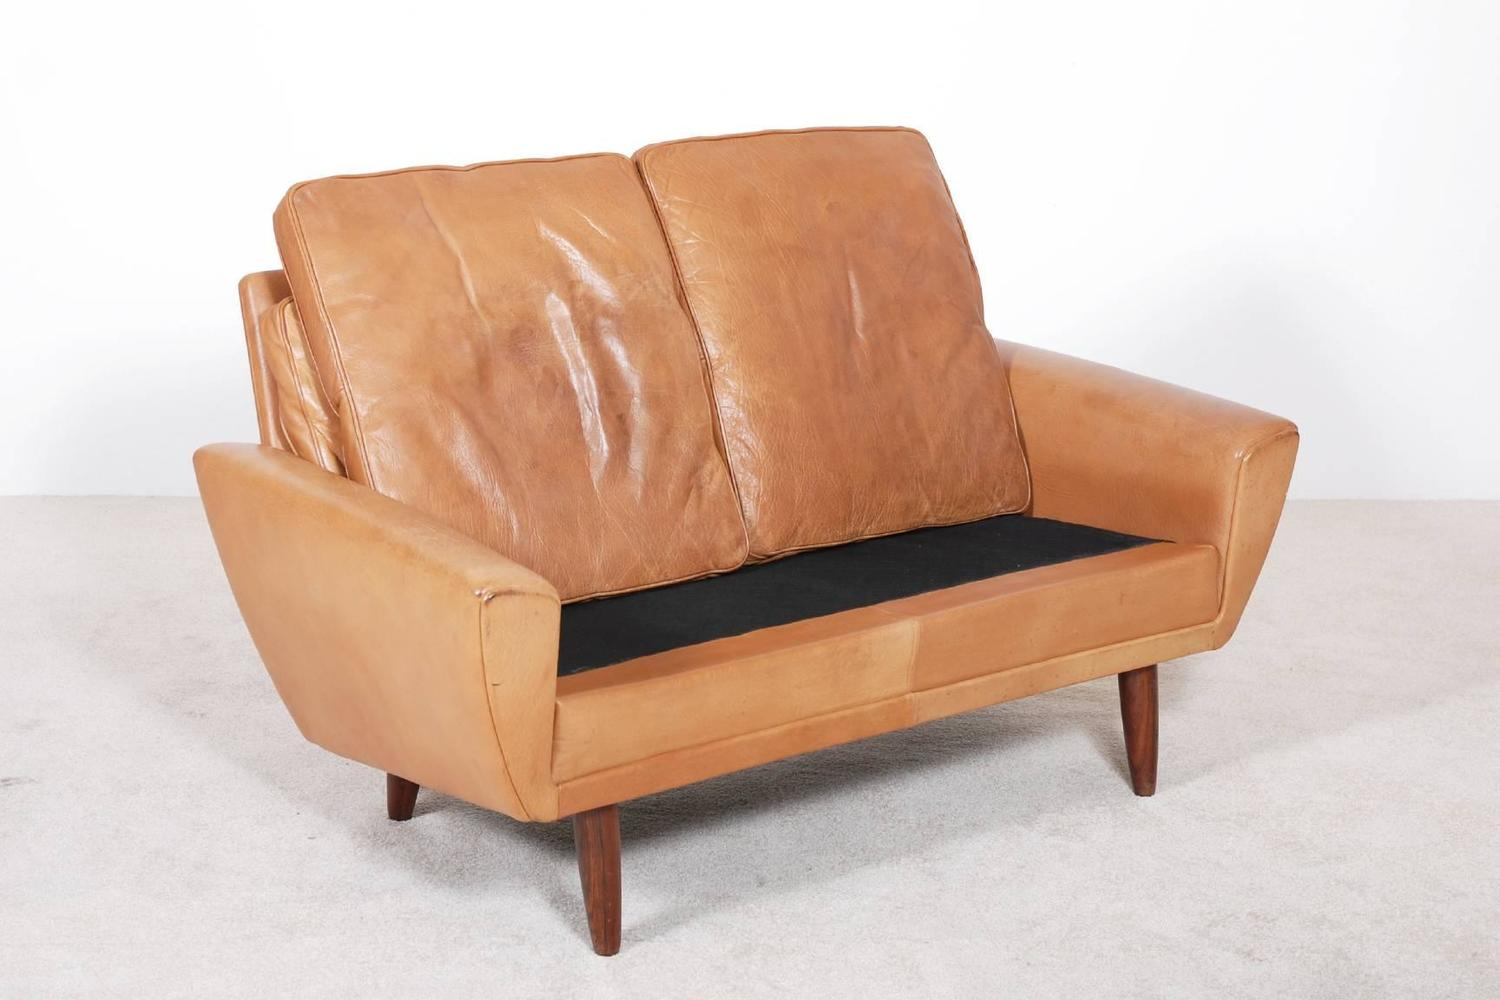 Scandinavian two seater leather sofa 1960 at 1stdibs for Leather sofa 7 seater